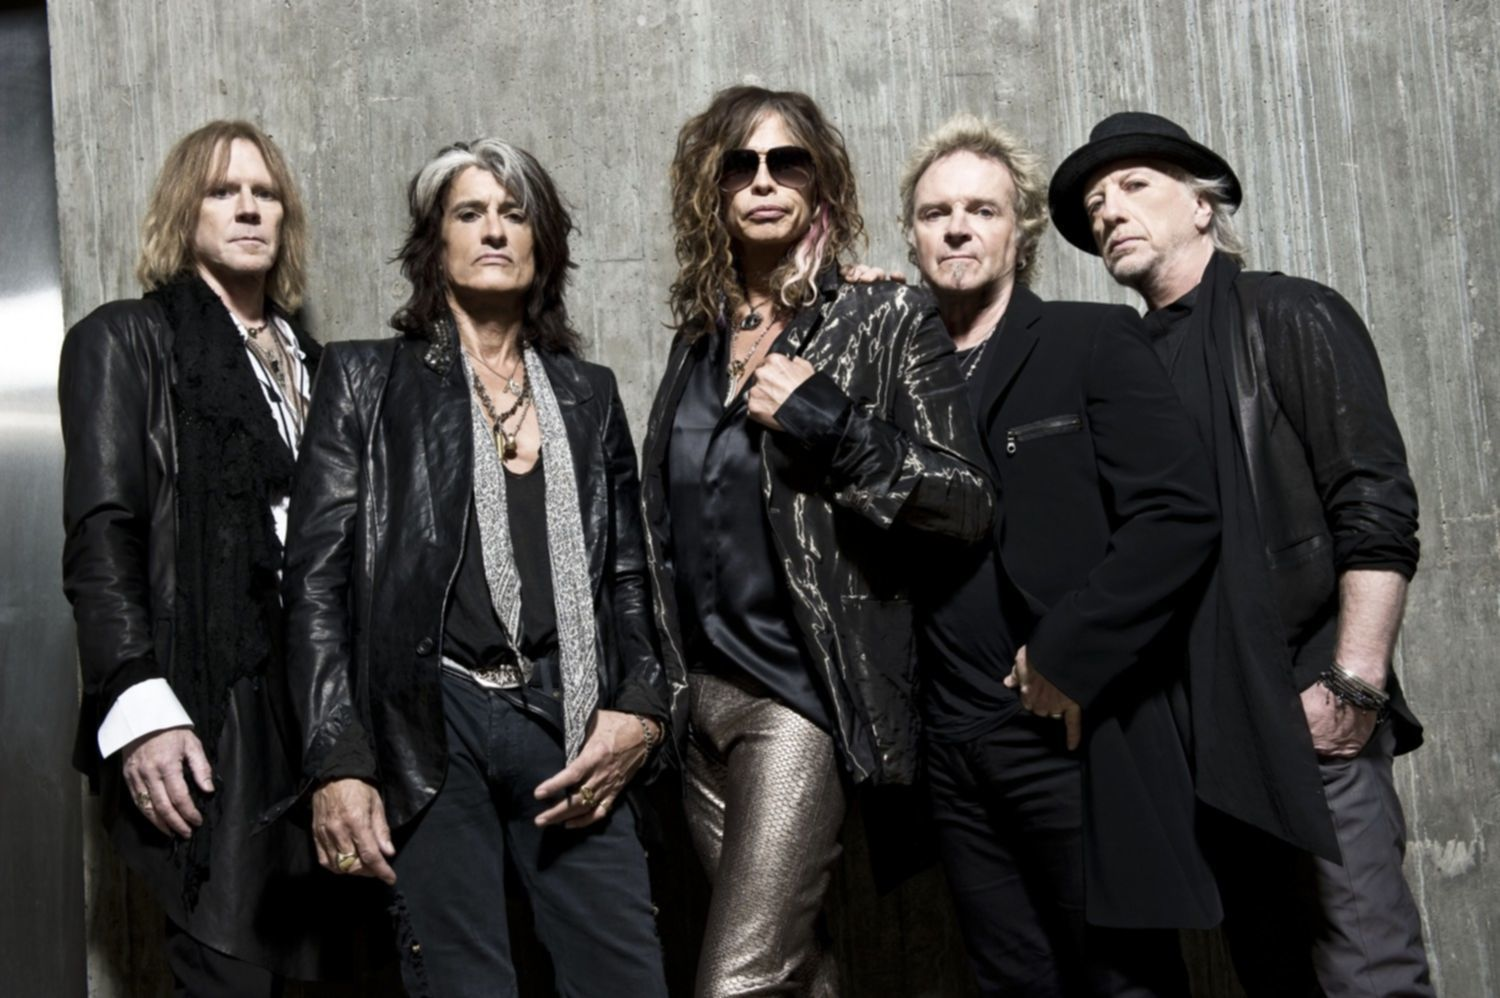 Aerosmith 3 @ Sony Music